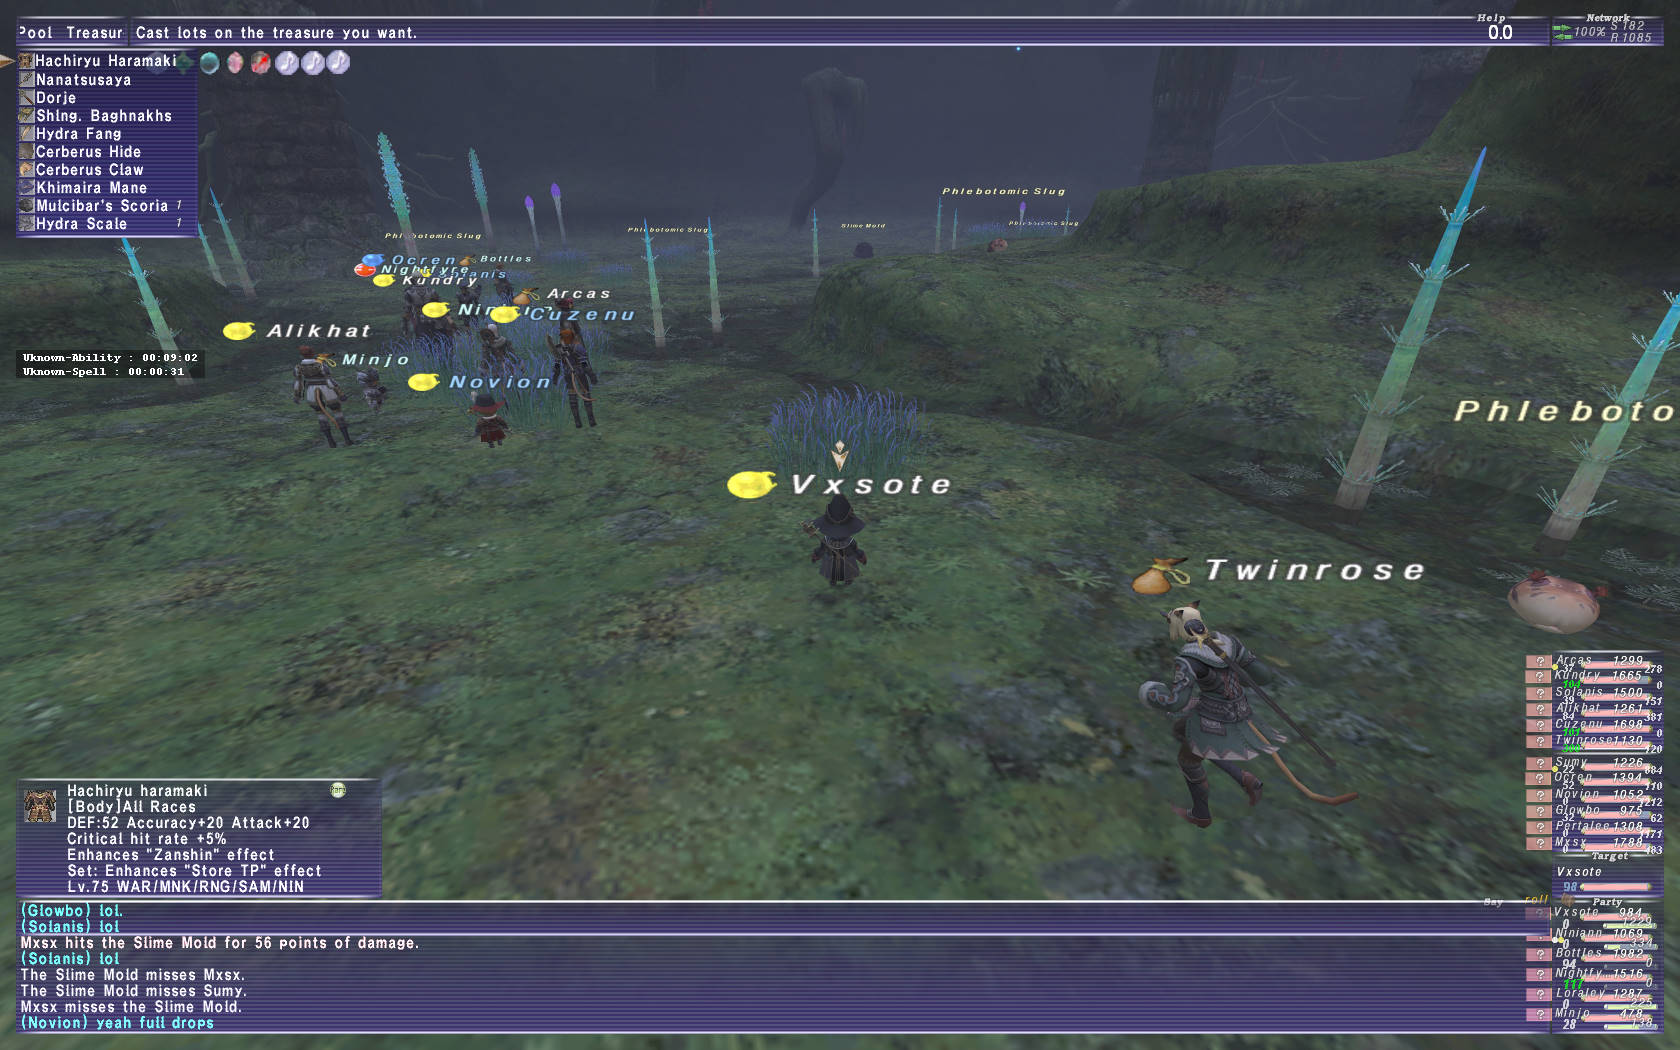 vxsote ffxi have drop that however seems currency affects correlation only told what going been gear either unless appear does small sample done changes piece killed fair amount rate procs none though they will affect regarding procd mobs neo-dynamis read